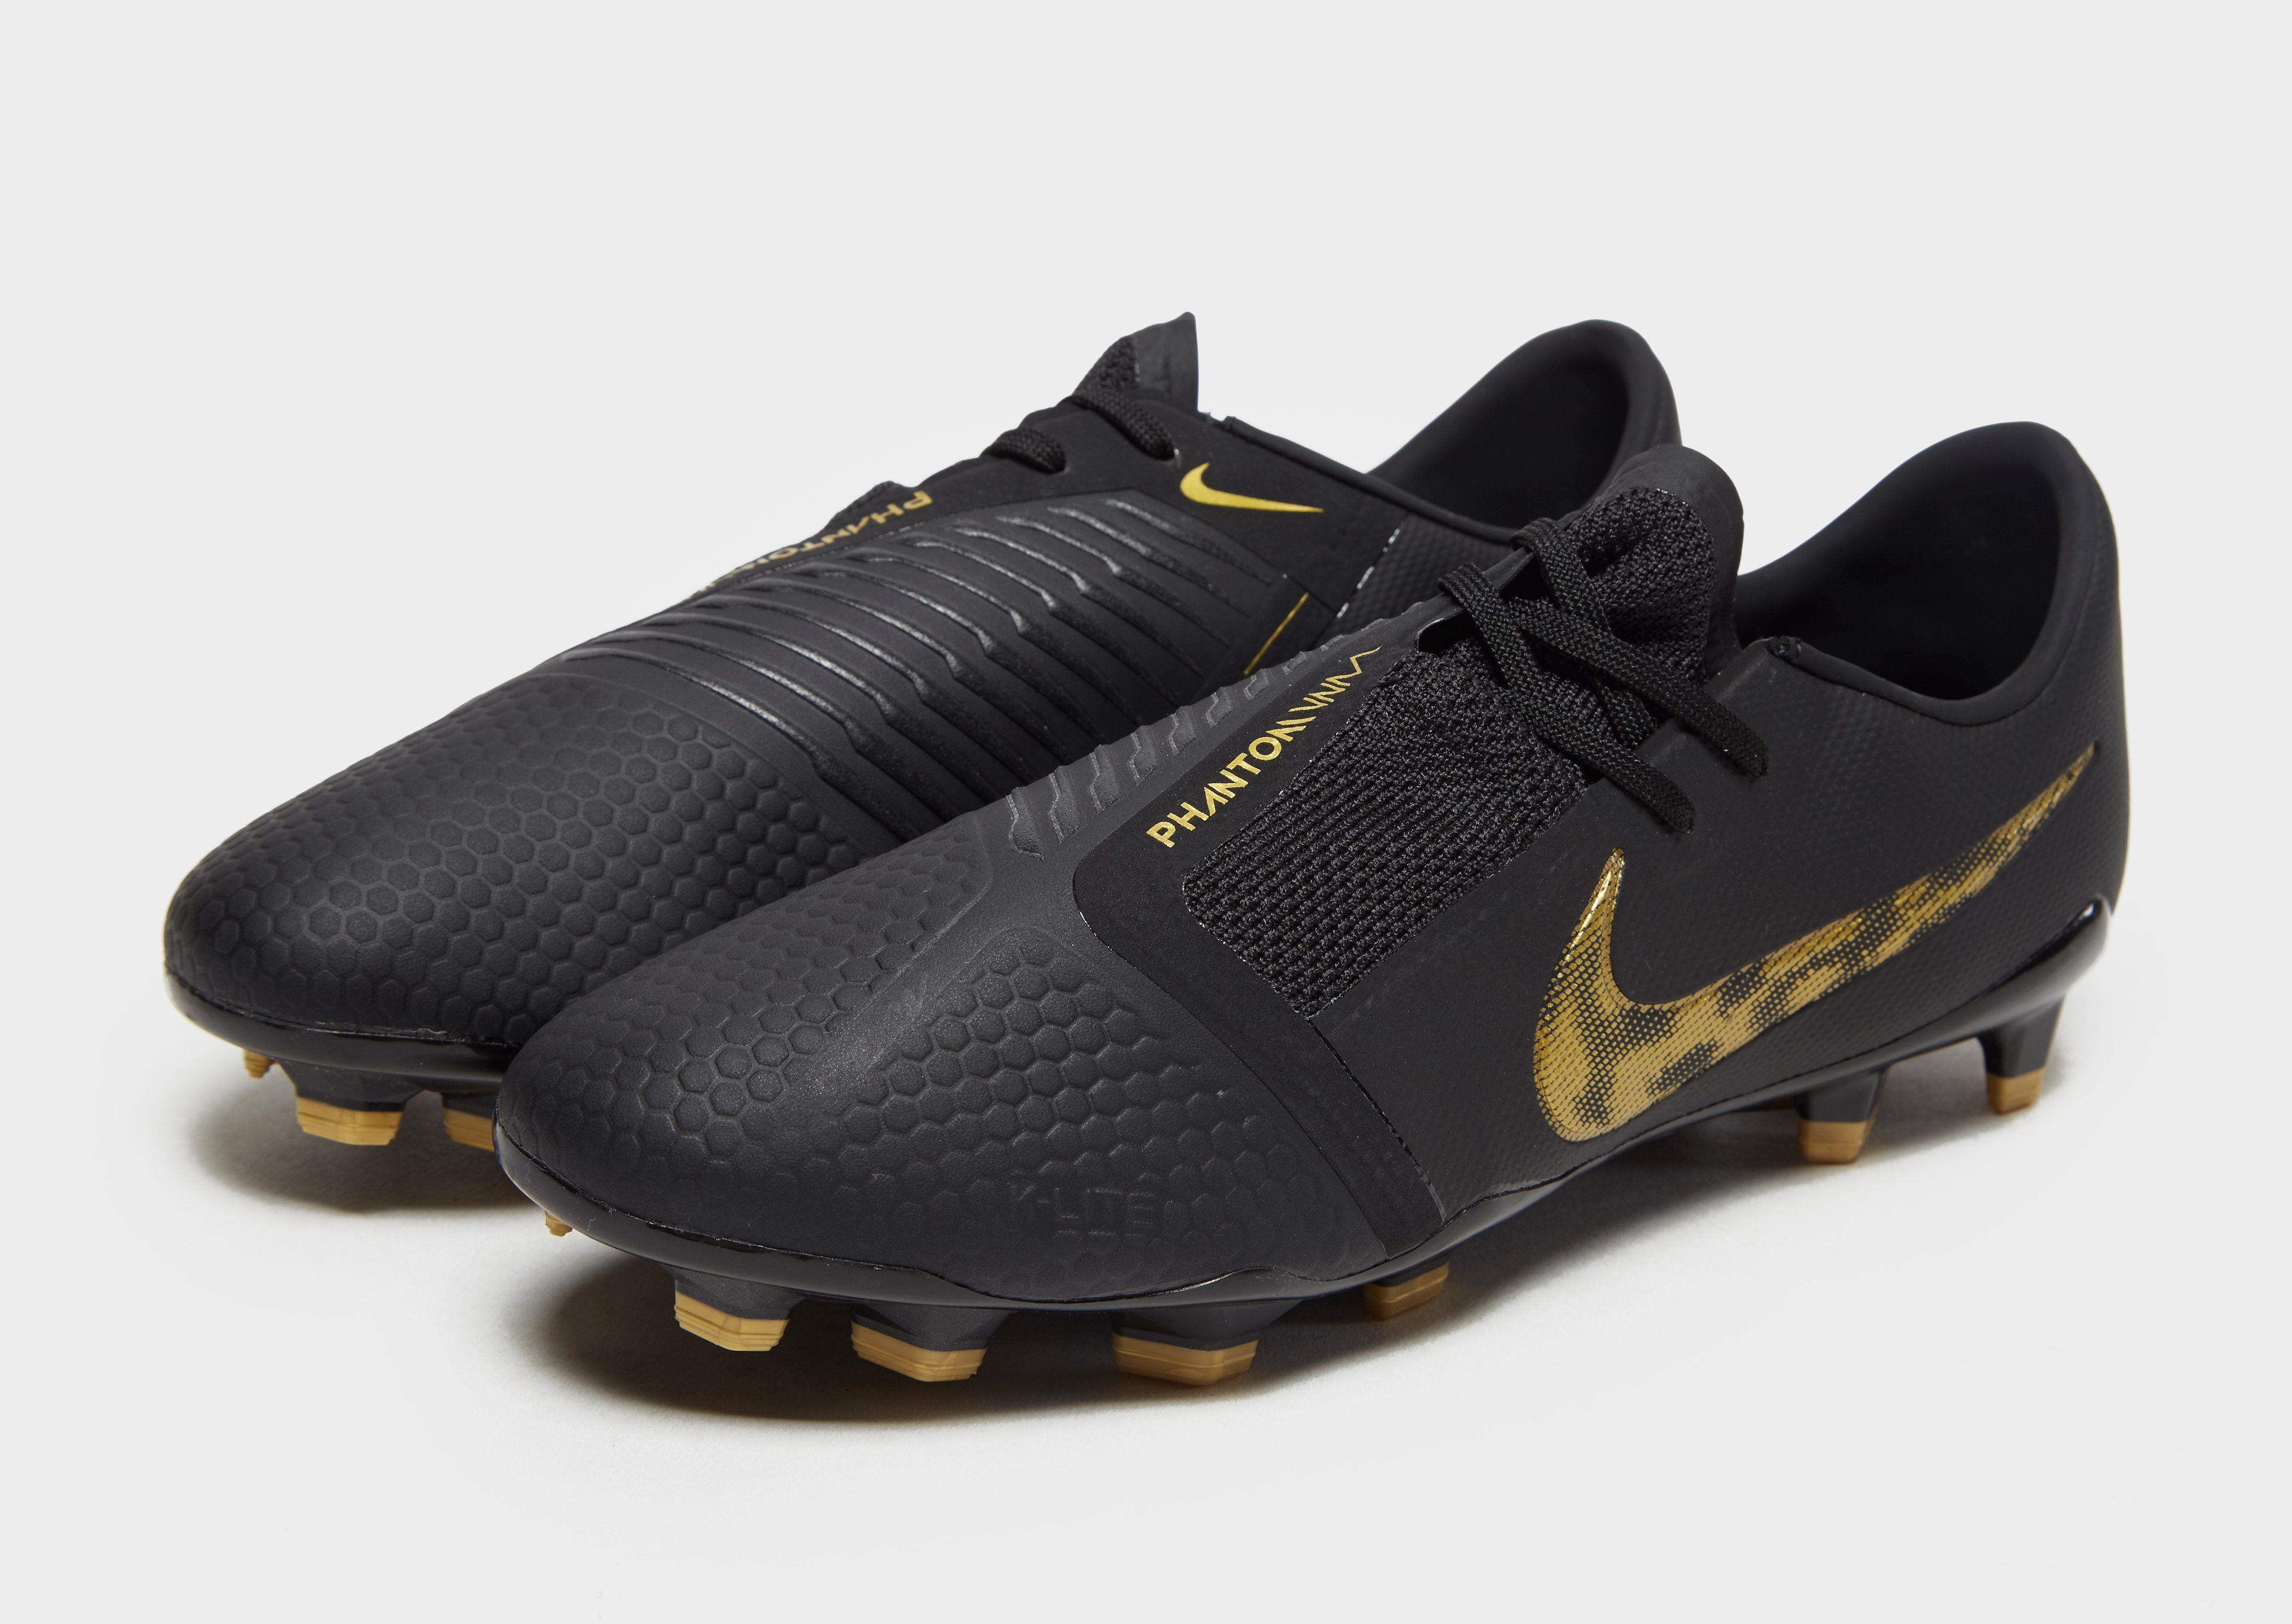 NIKE Nike PhantomVNM Pro FG Game Over Firm-Ground Football Boot